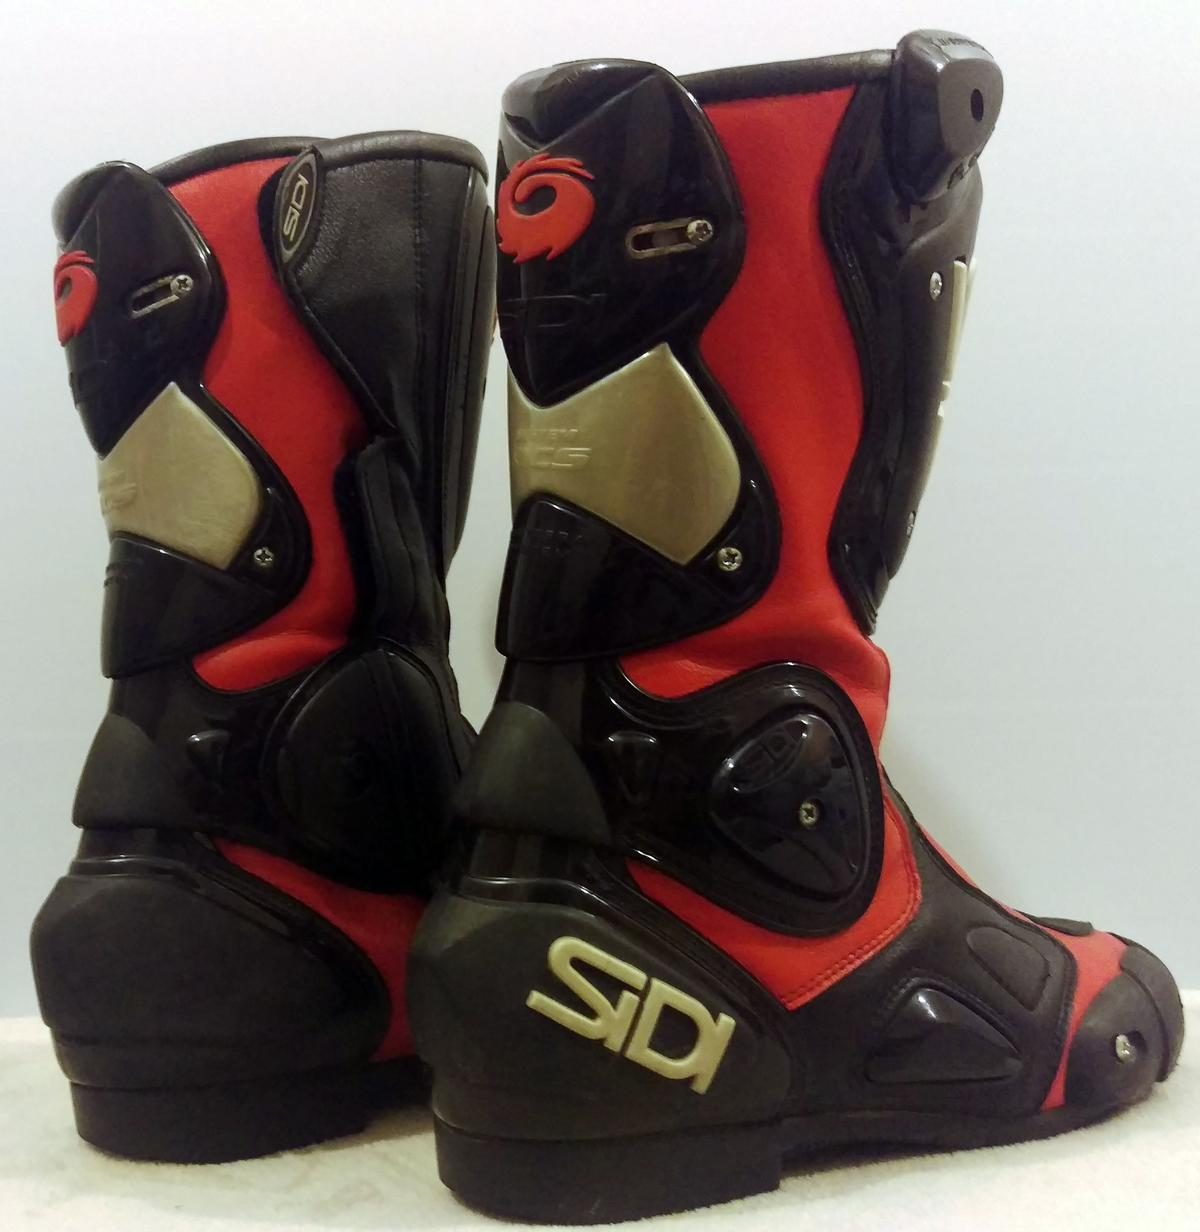 Sidi Vertebra 2 Motorcycle Boots Eu 41 Uk 7 In Ne38 Washington For